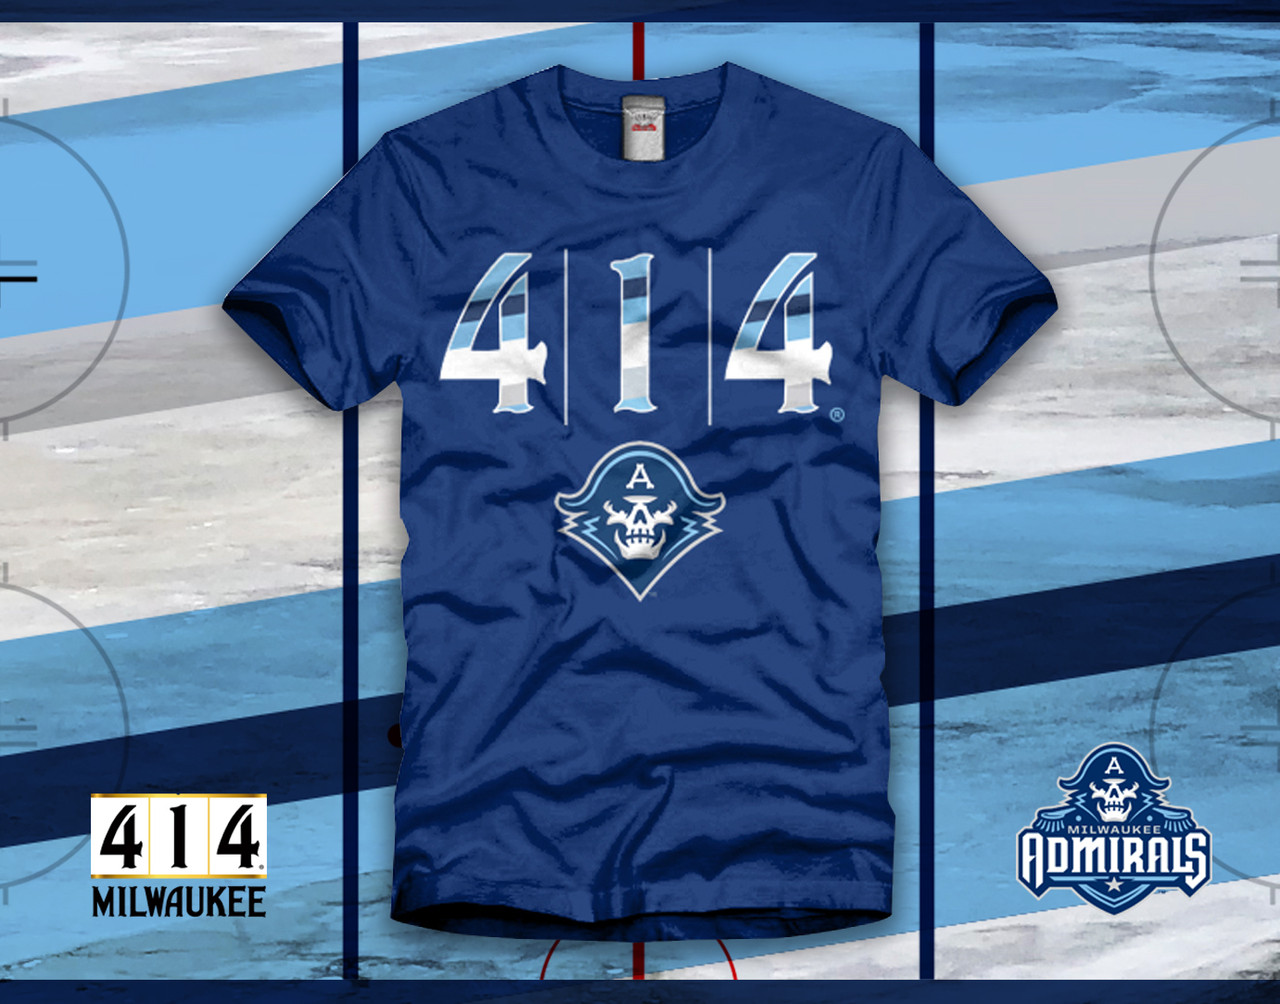 414 and the Milwaukee Admirals